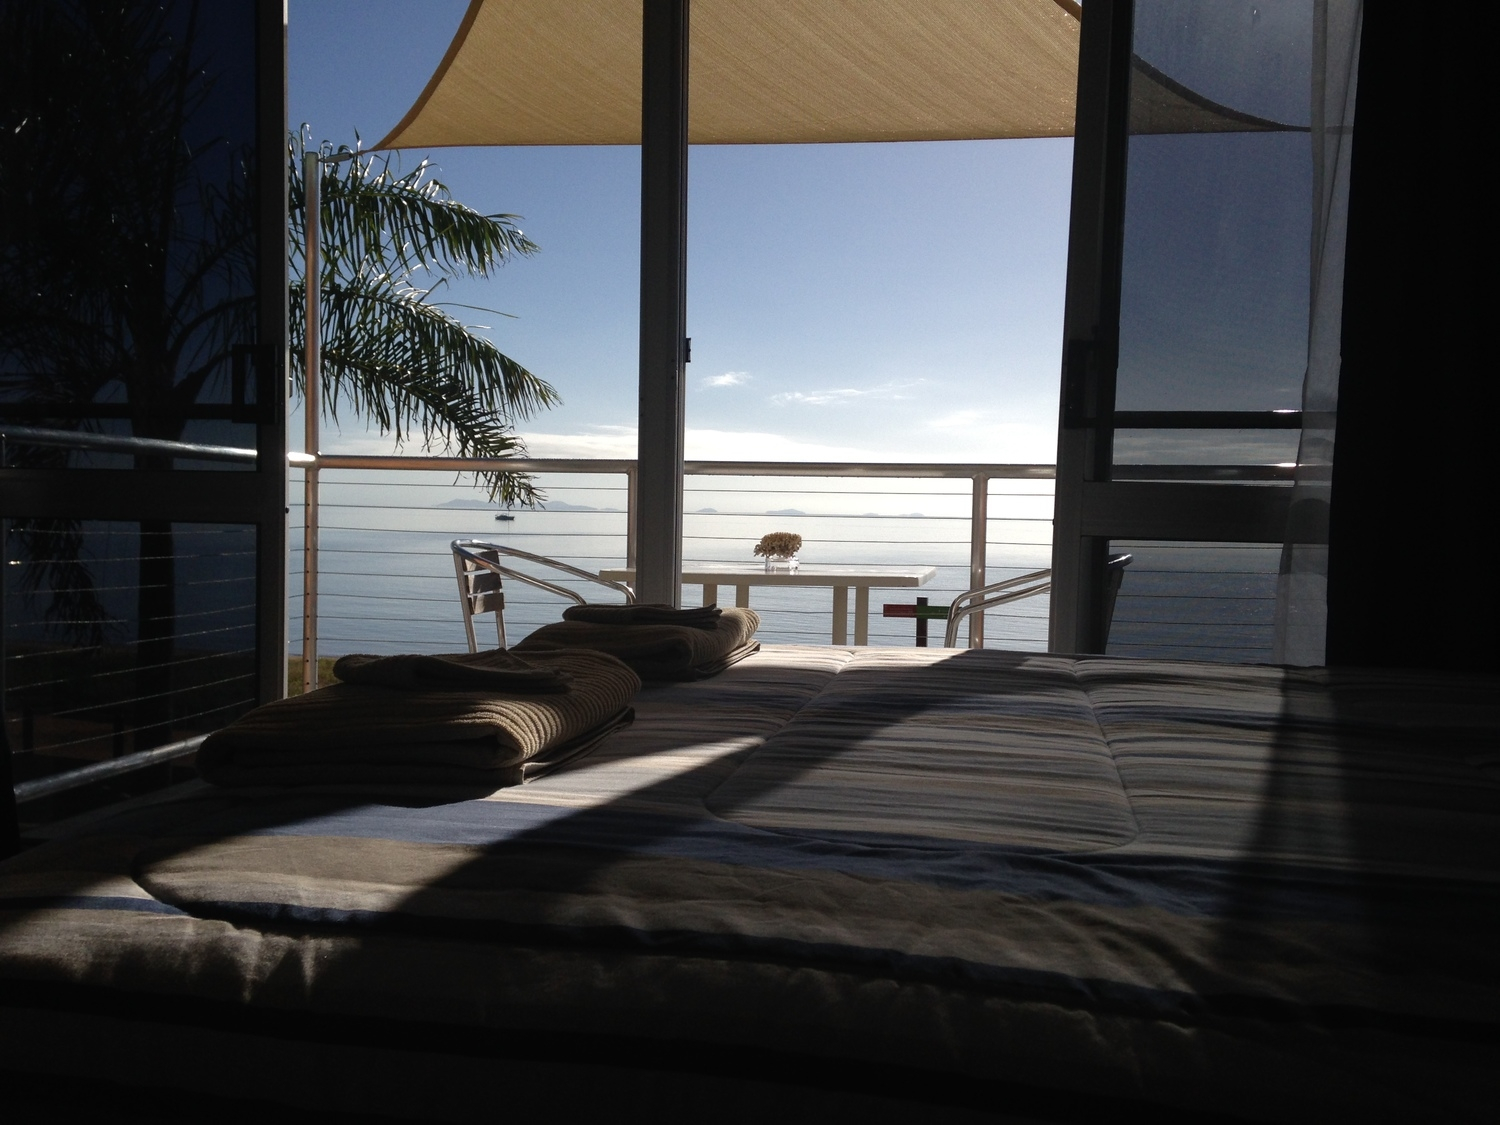 What an outlook! Studio Apartment with Ocean Views